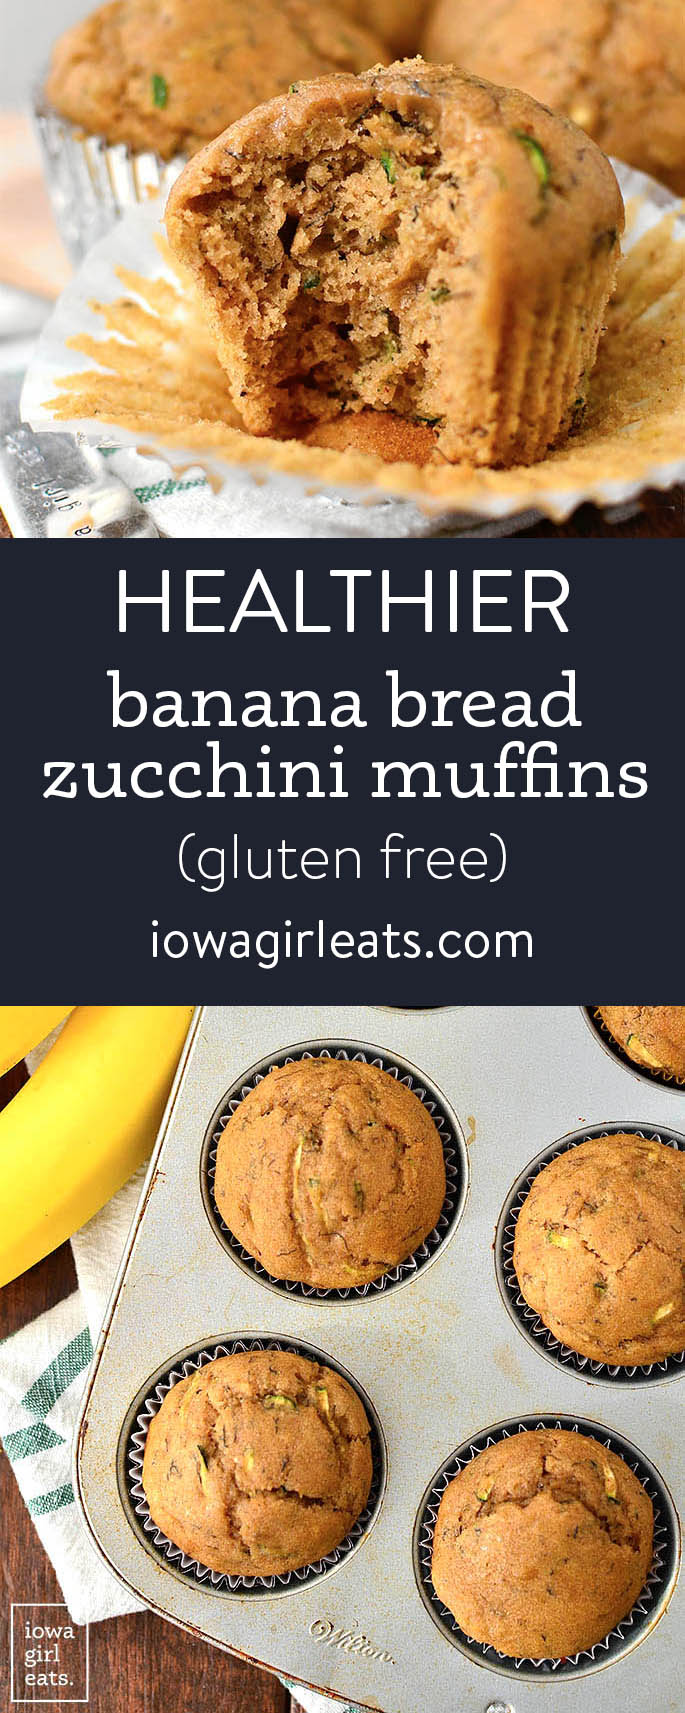 Photo collage of of Healthier banana bread zucchini muffins